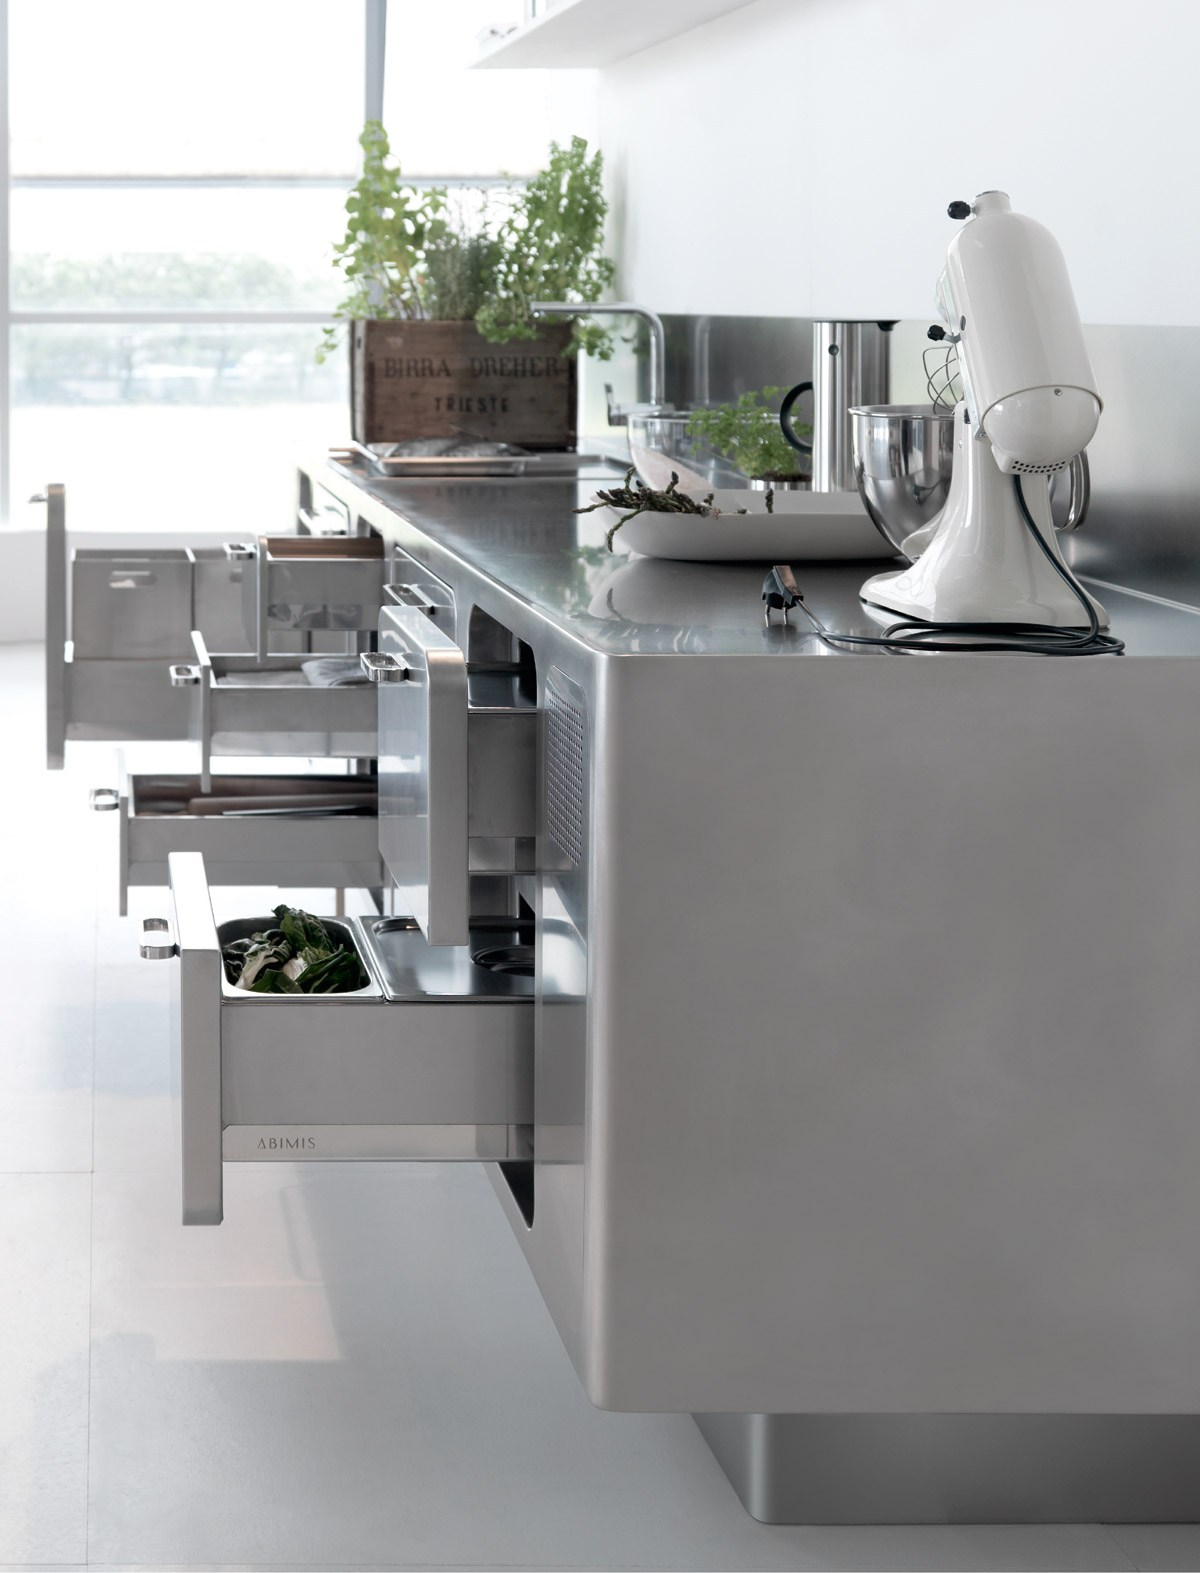 Professional Stainless Steel Kitchen Ego By Abimis Is A